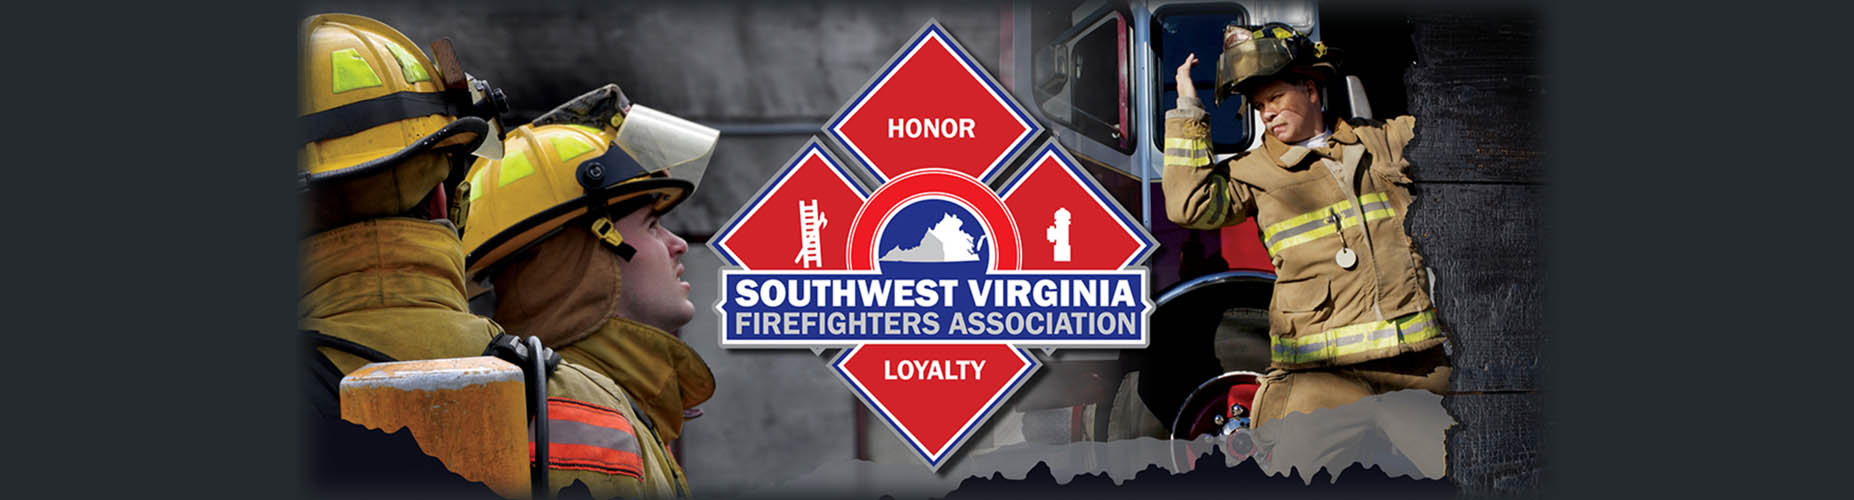 SWVA Firefighters Association